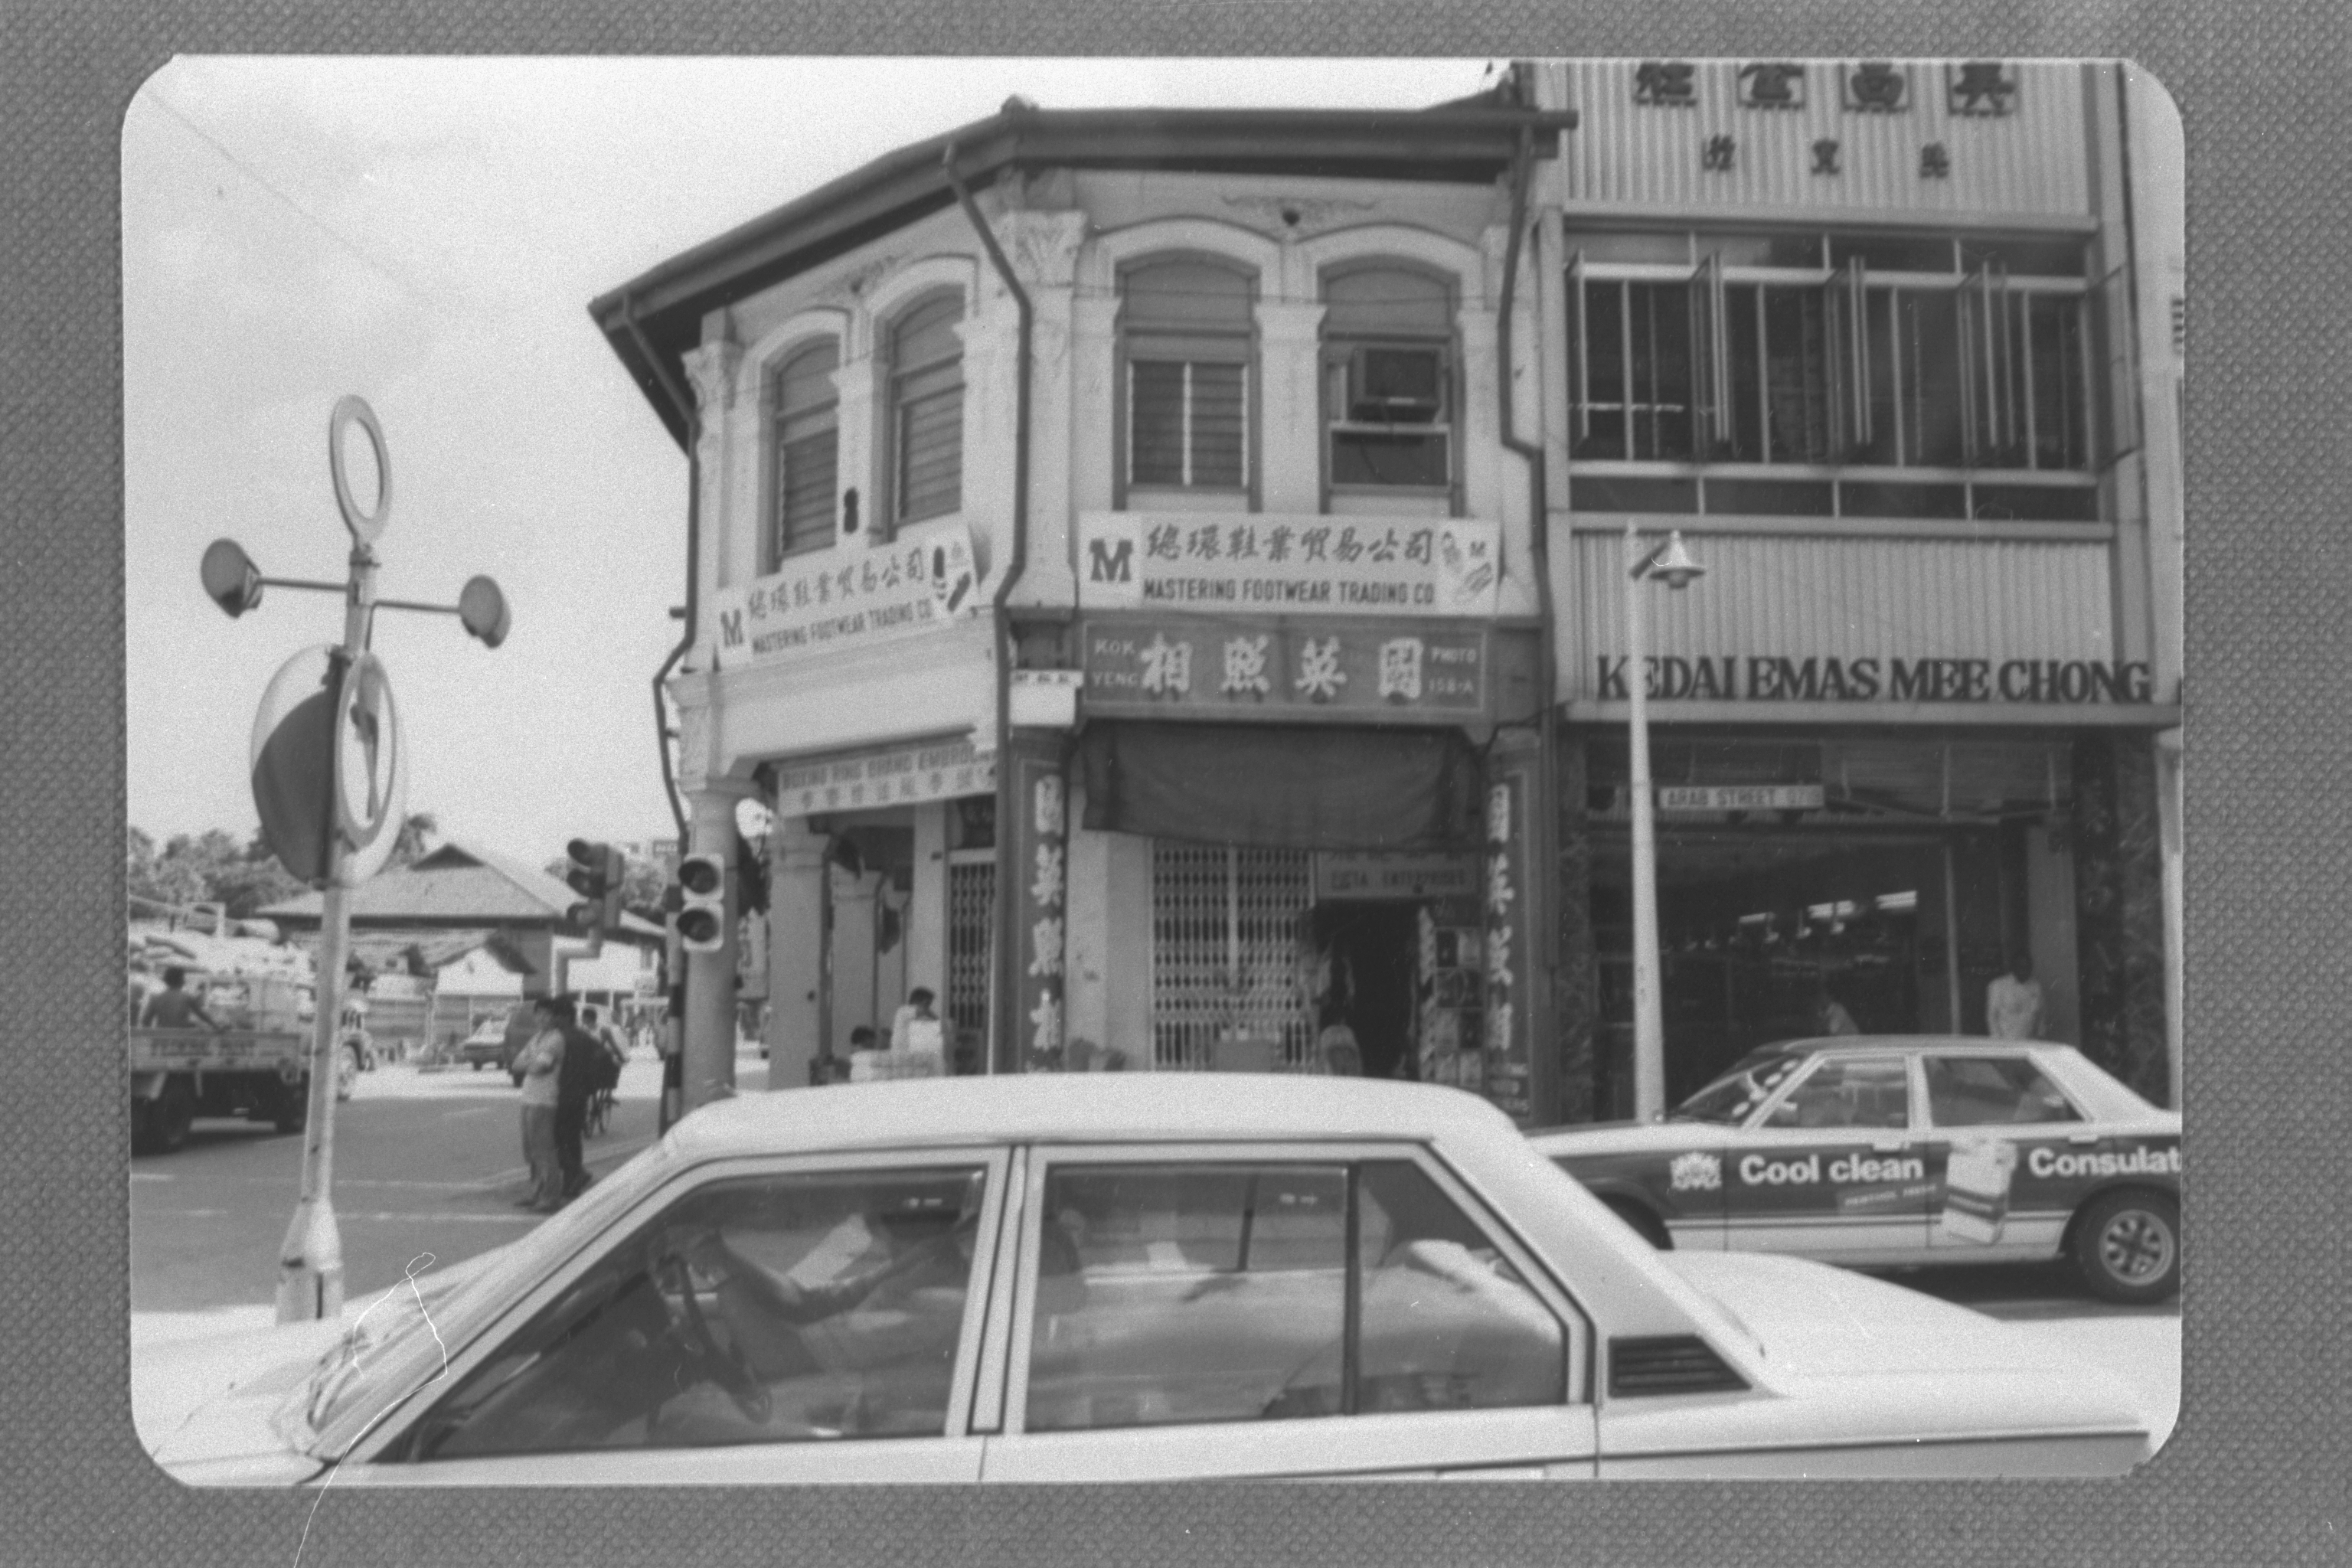 Arab Street, 1985. URA Collection, courtesy of National Archives of Singapore